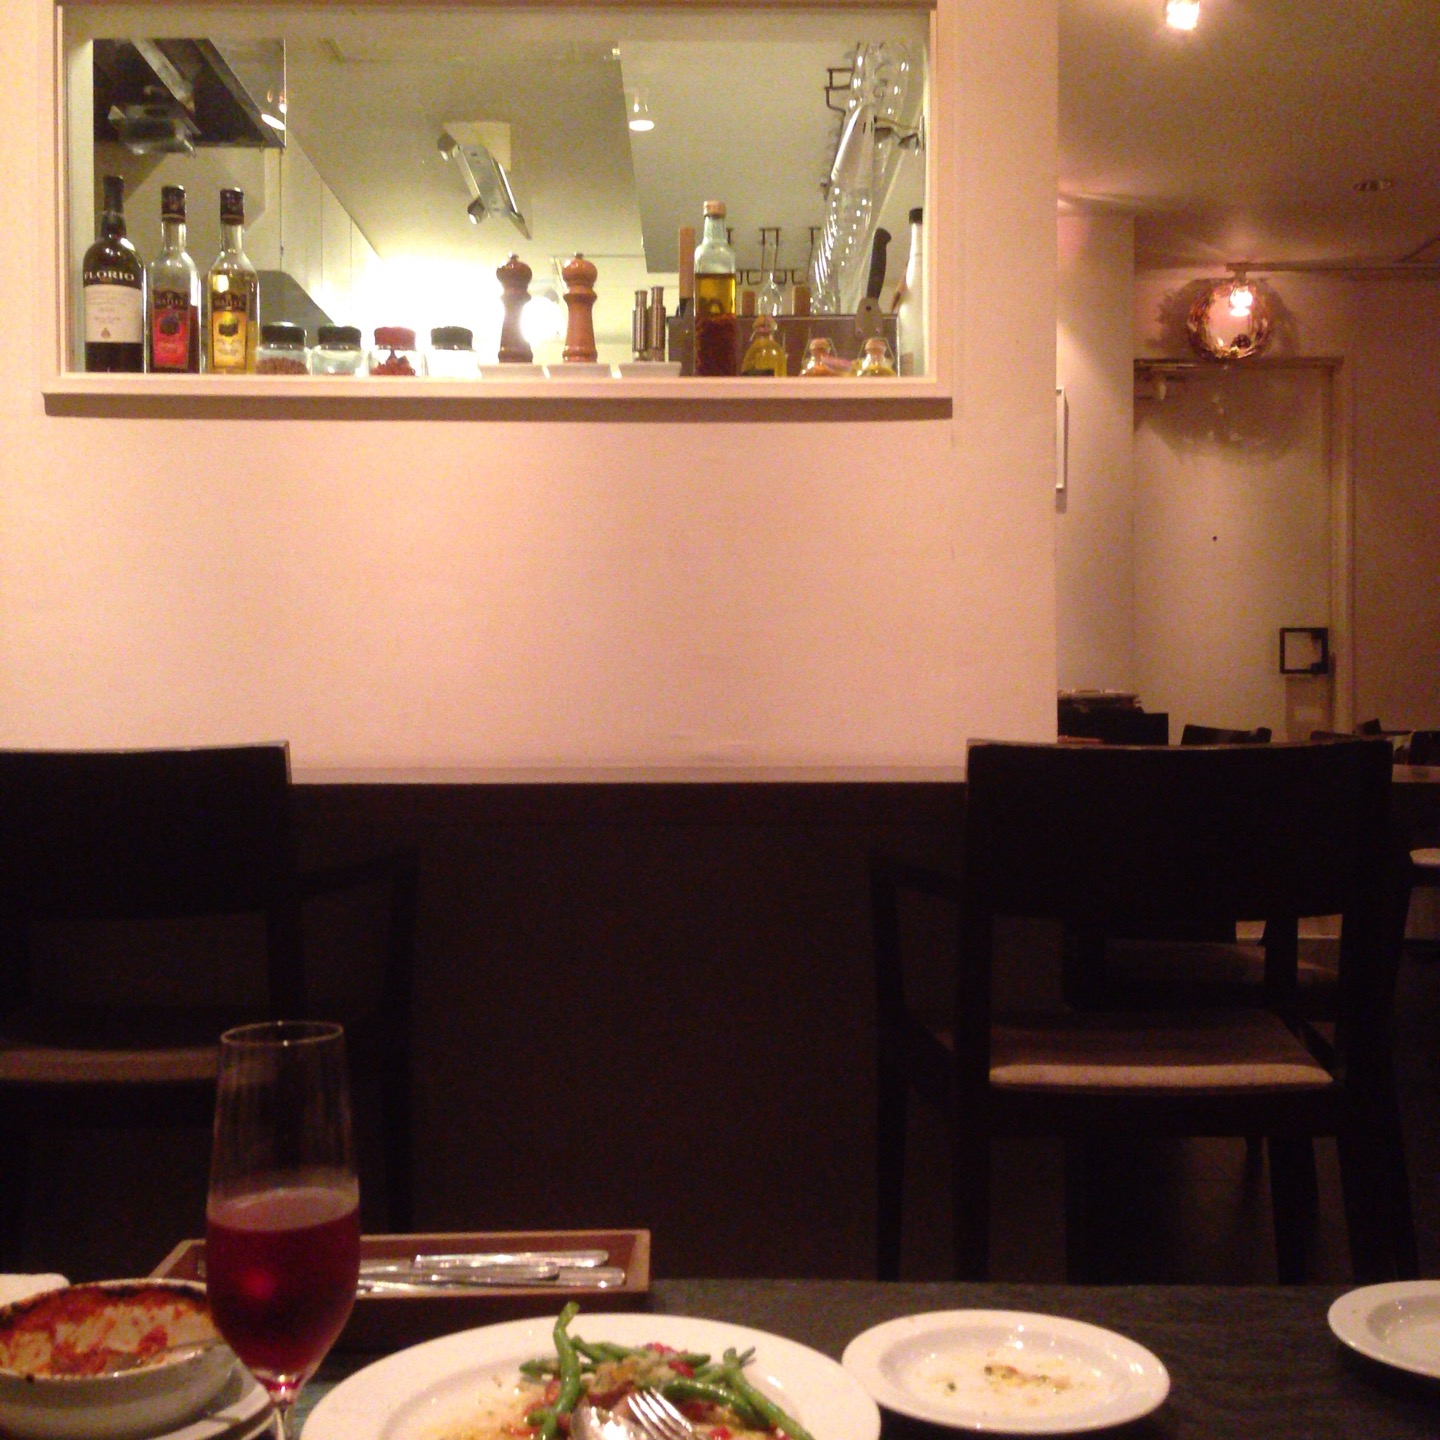 ☆☆☆☆ et sona dining & bar at渋谷 #foursquare